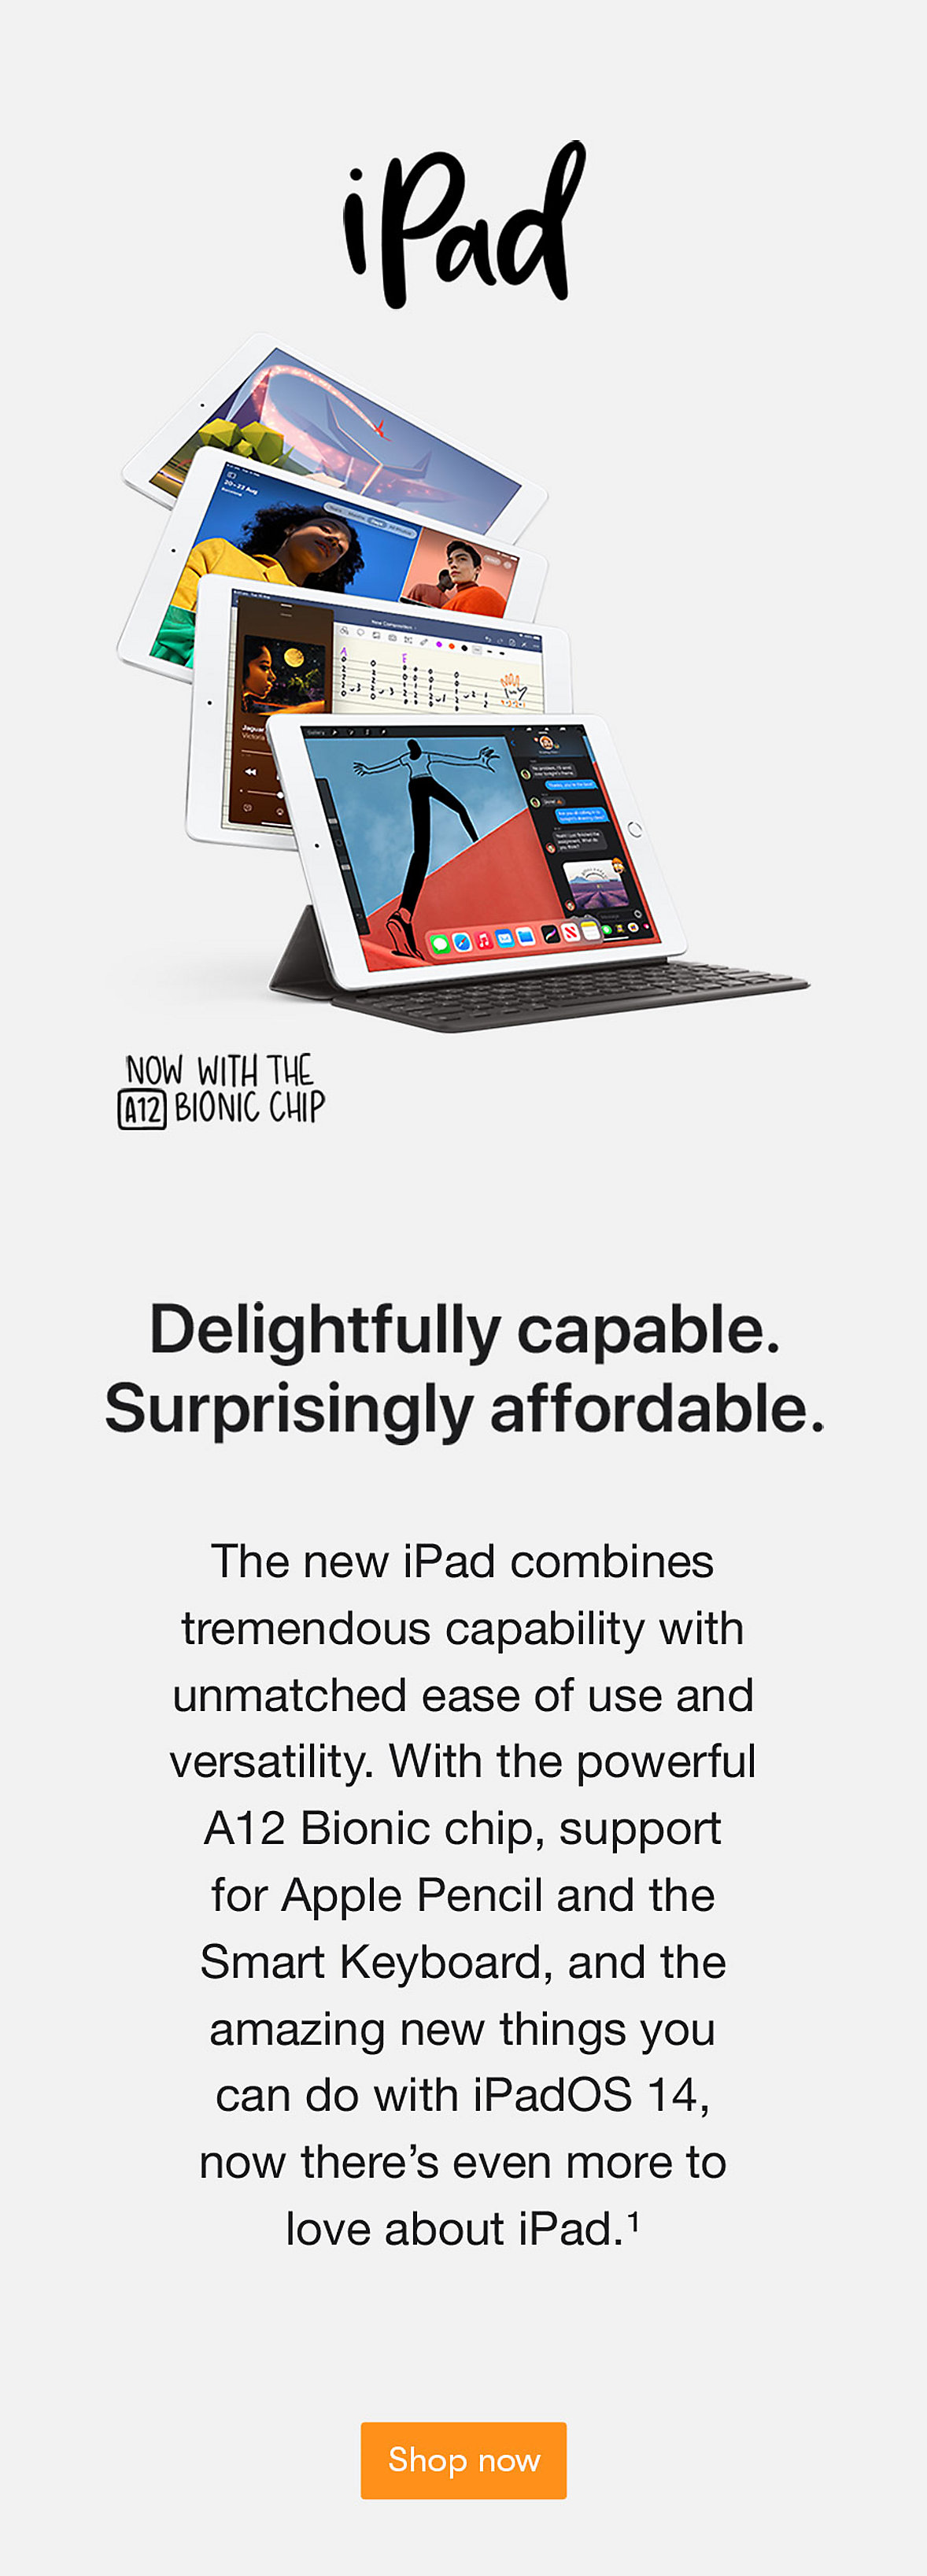 iPad 8. Delightfully capable. Surprisingly affordable.